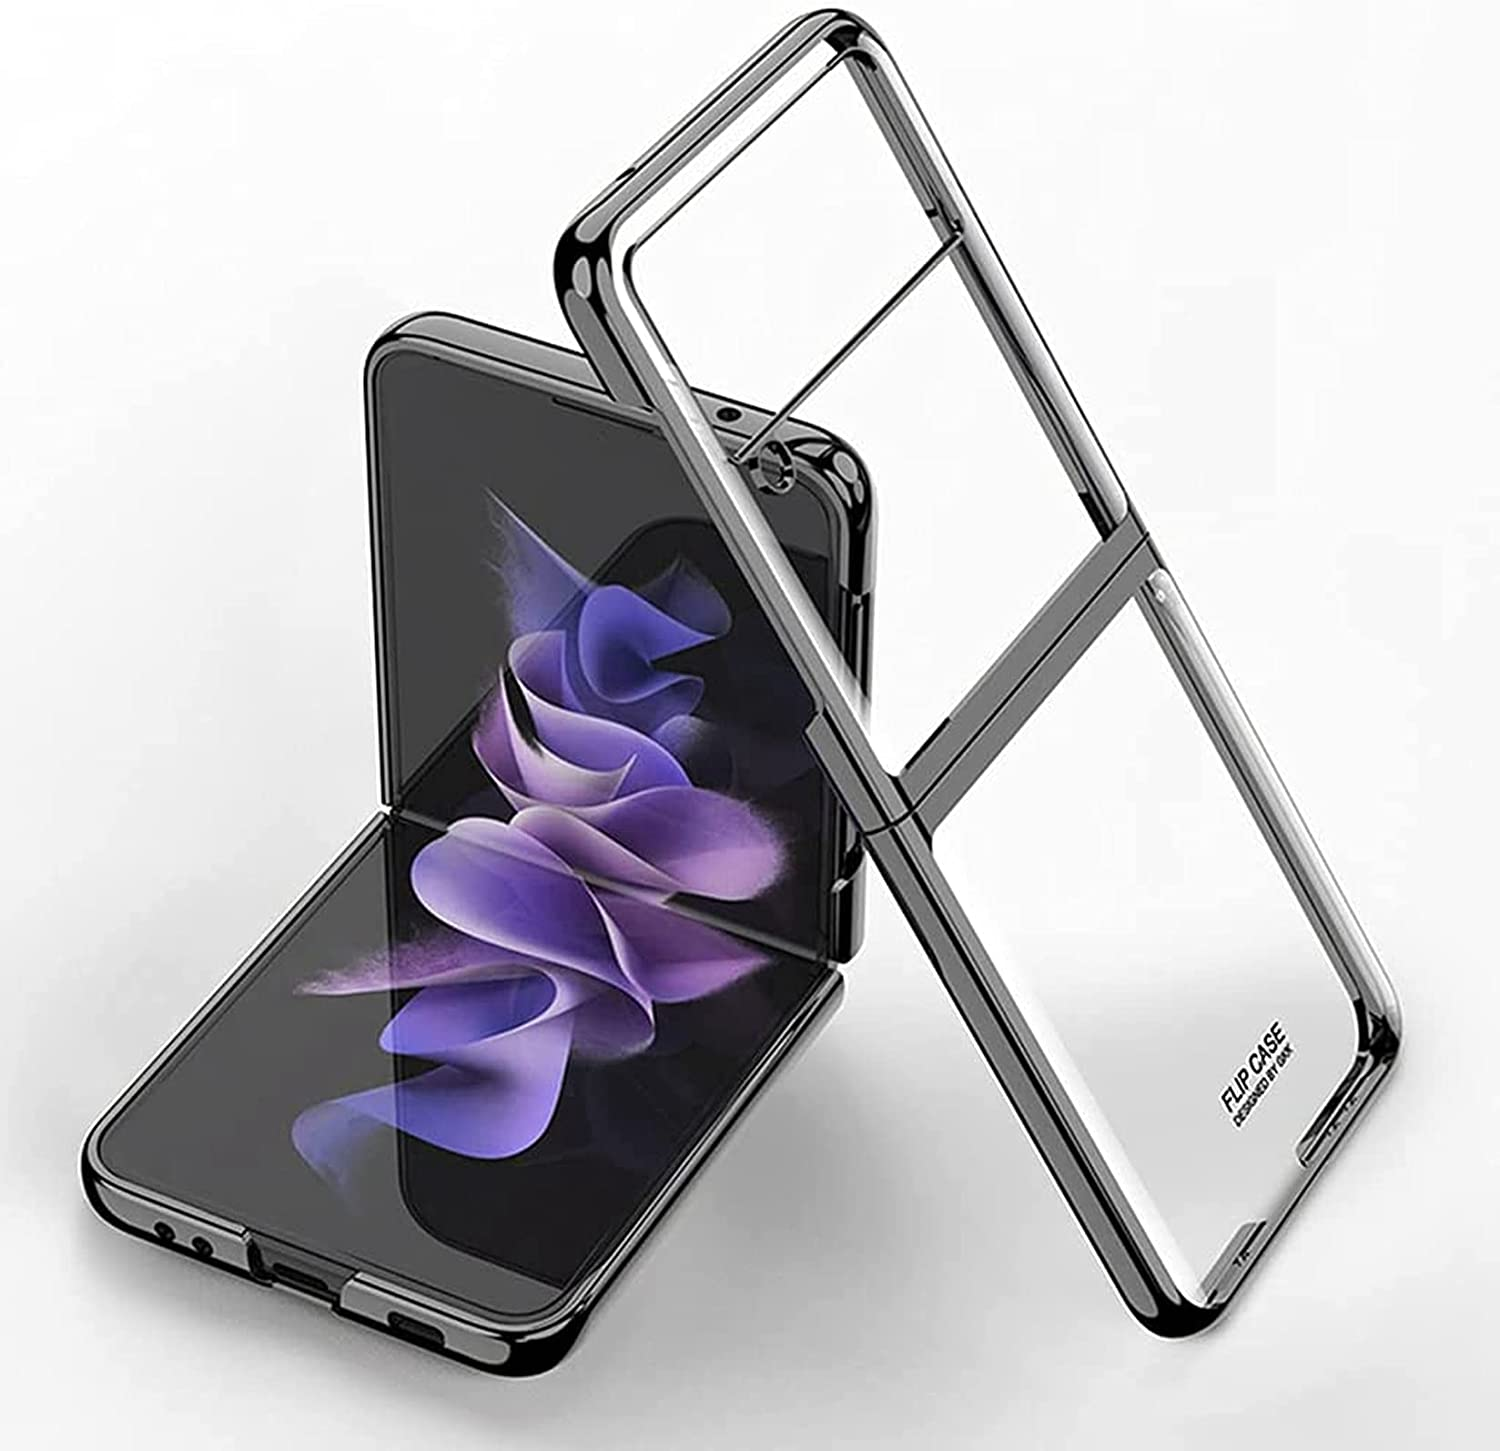 2021 Slim Case for Samsung Galaxy Z Flip 3, for Samsung Galaxy z flip 3 case, Premium Thin Transparent Hard PC Protective Phone Cover for Z Flip3 5G. (Cool Black)